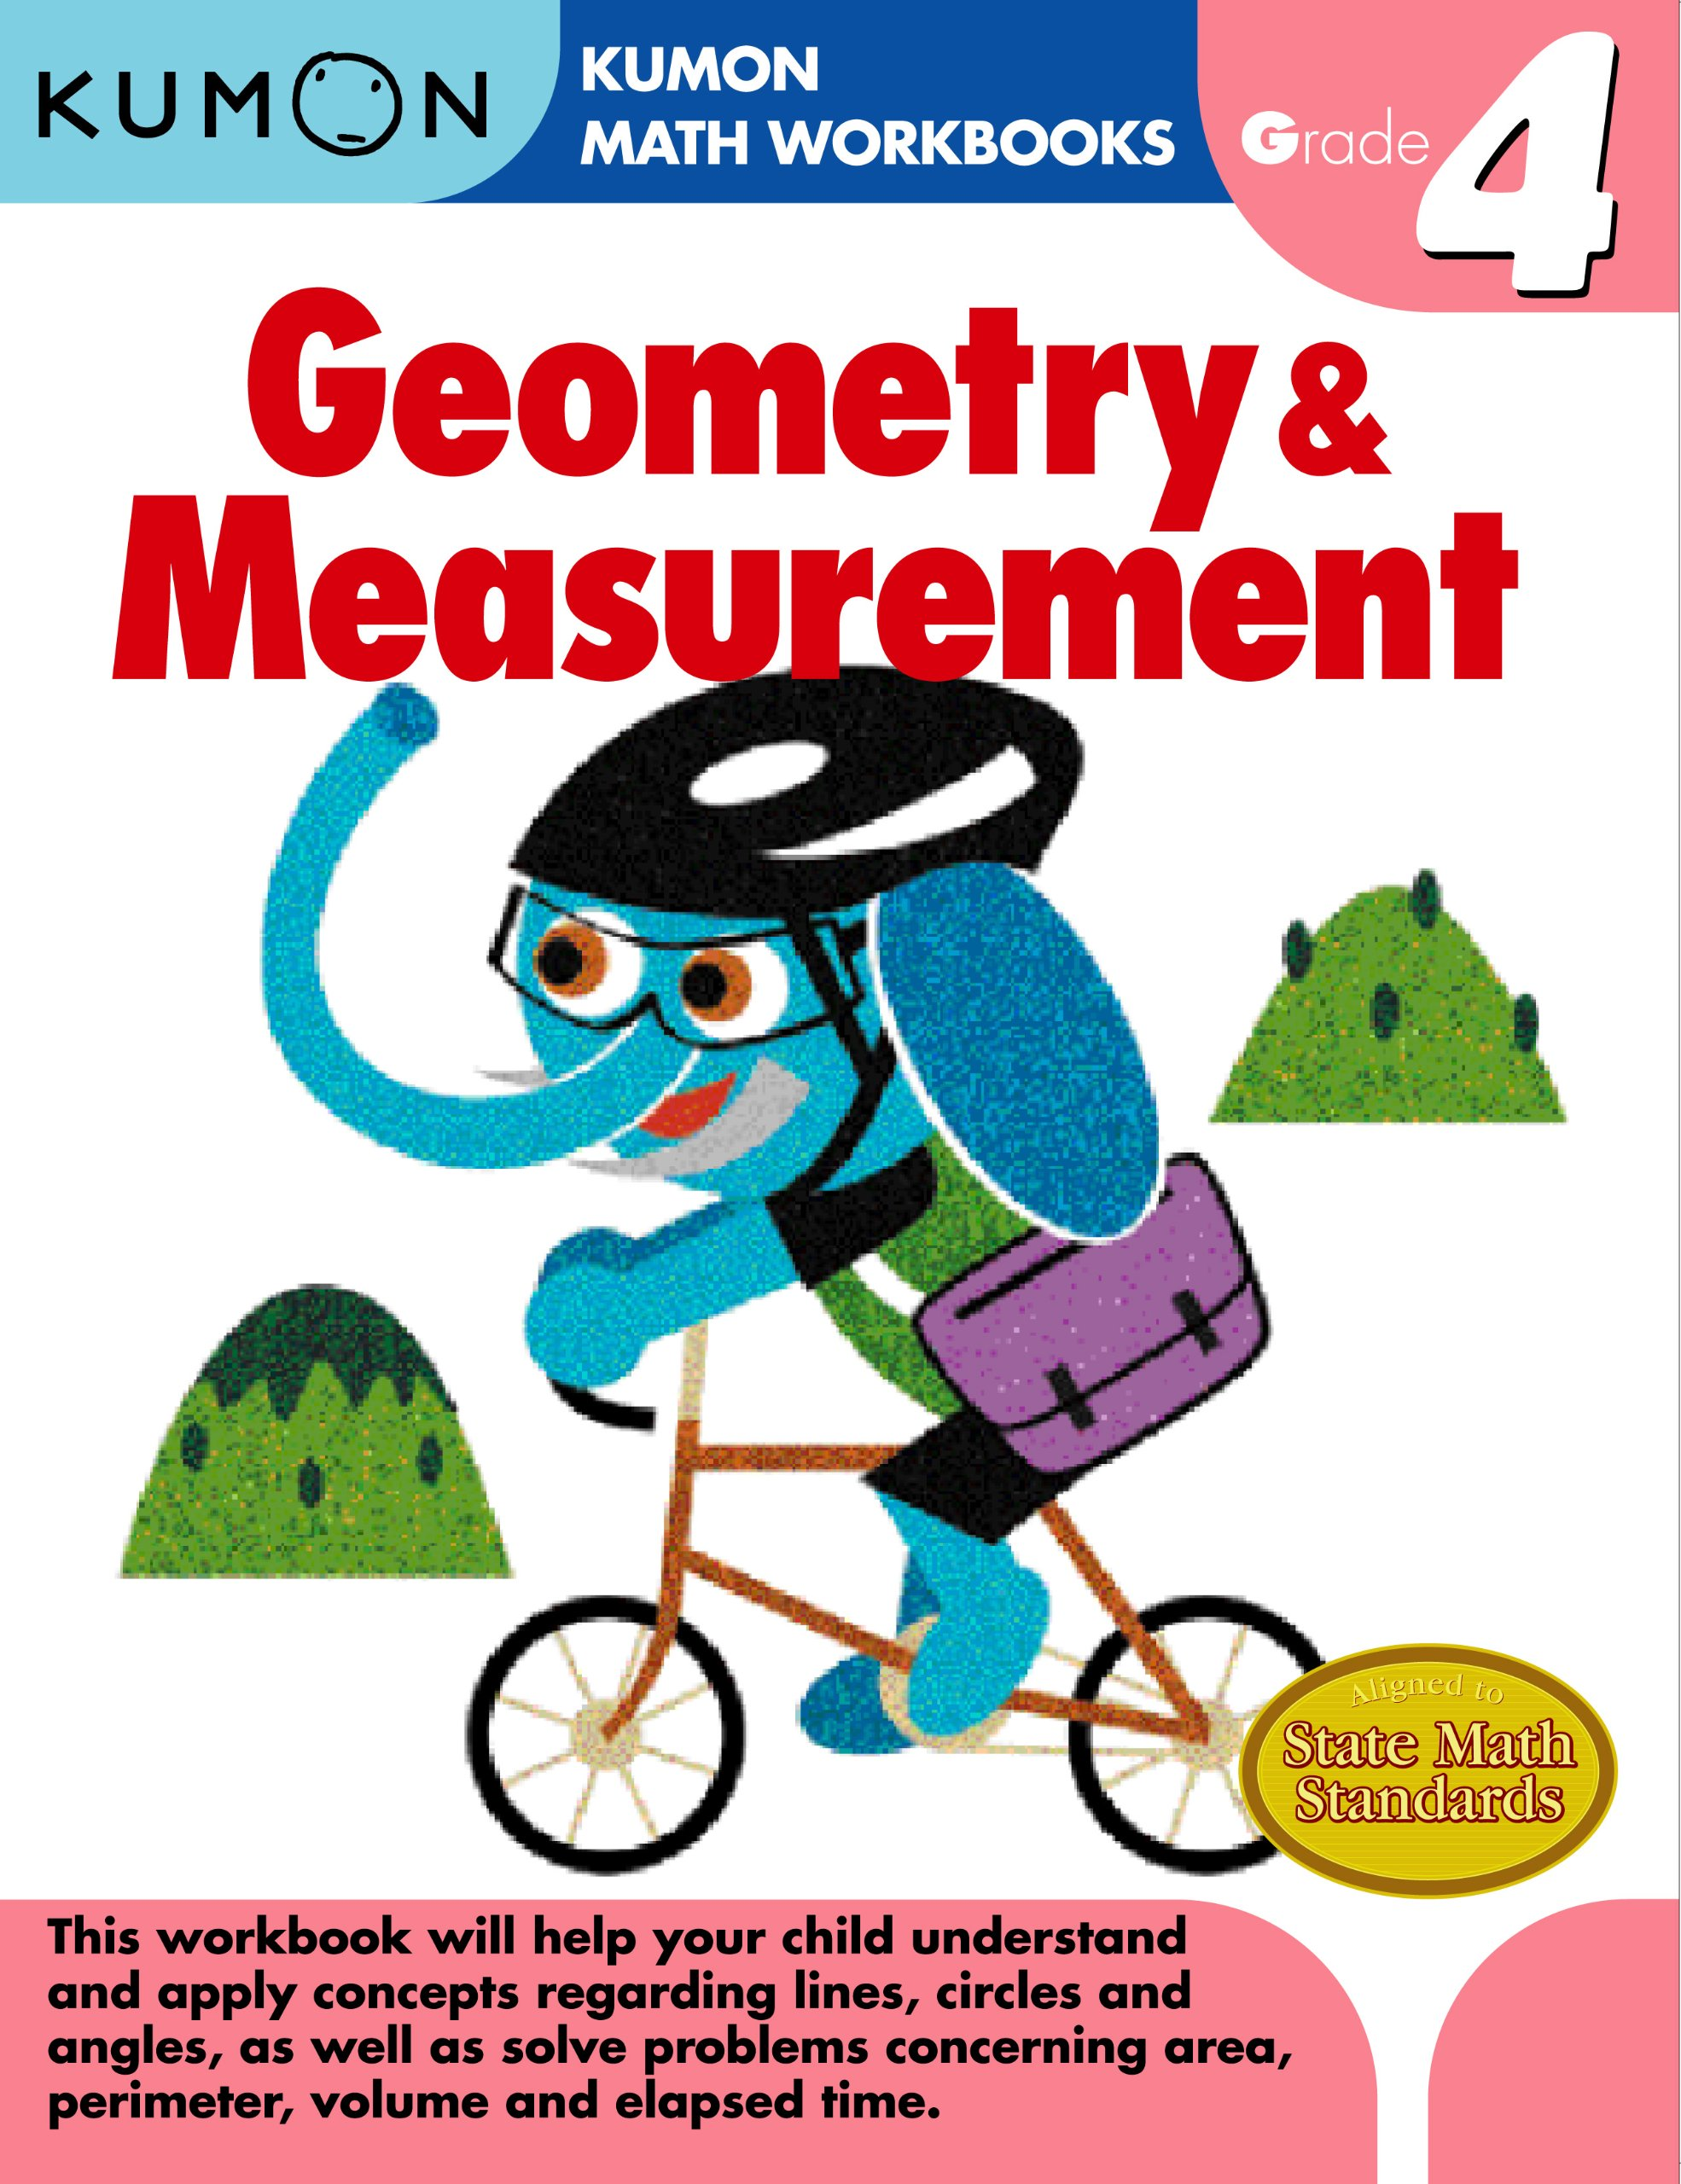 Geometry & Measurement, Grade 4 (Kumon Math Workbooks): Amazon.co.uk ...